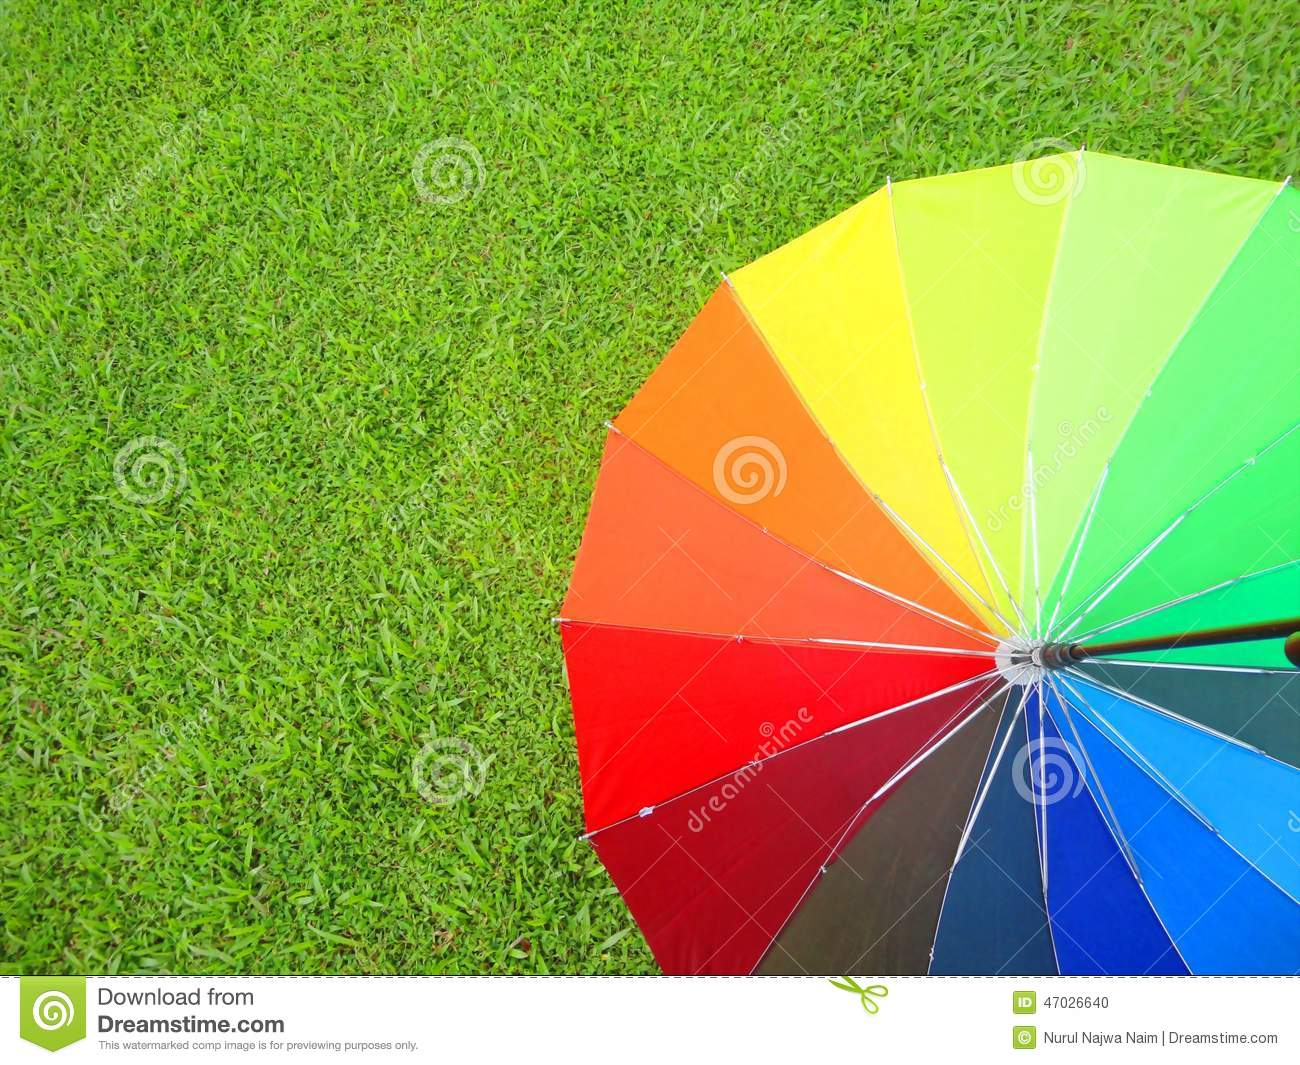 Colorful umbrella on grass stock photo. Image of colorful - 47026640